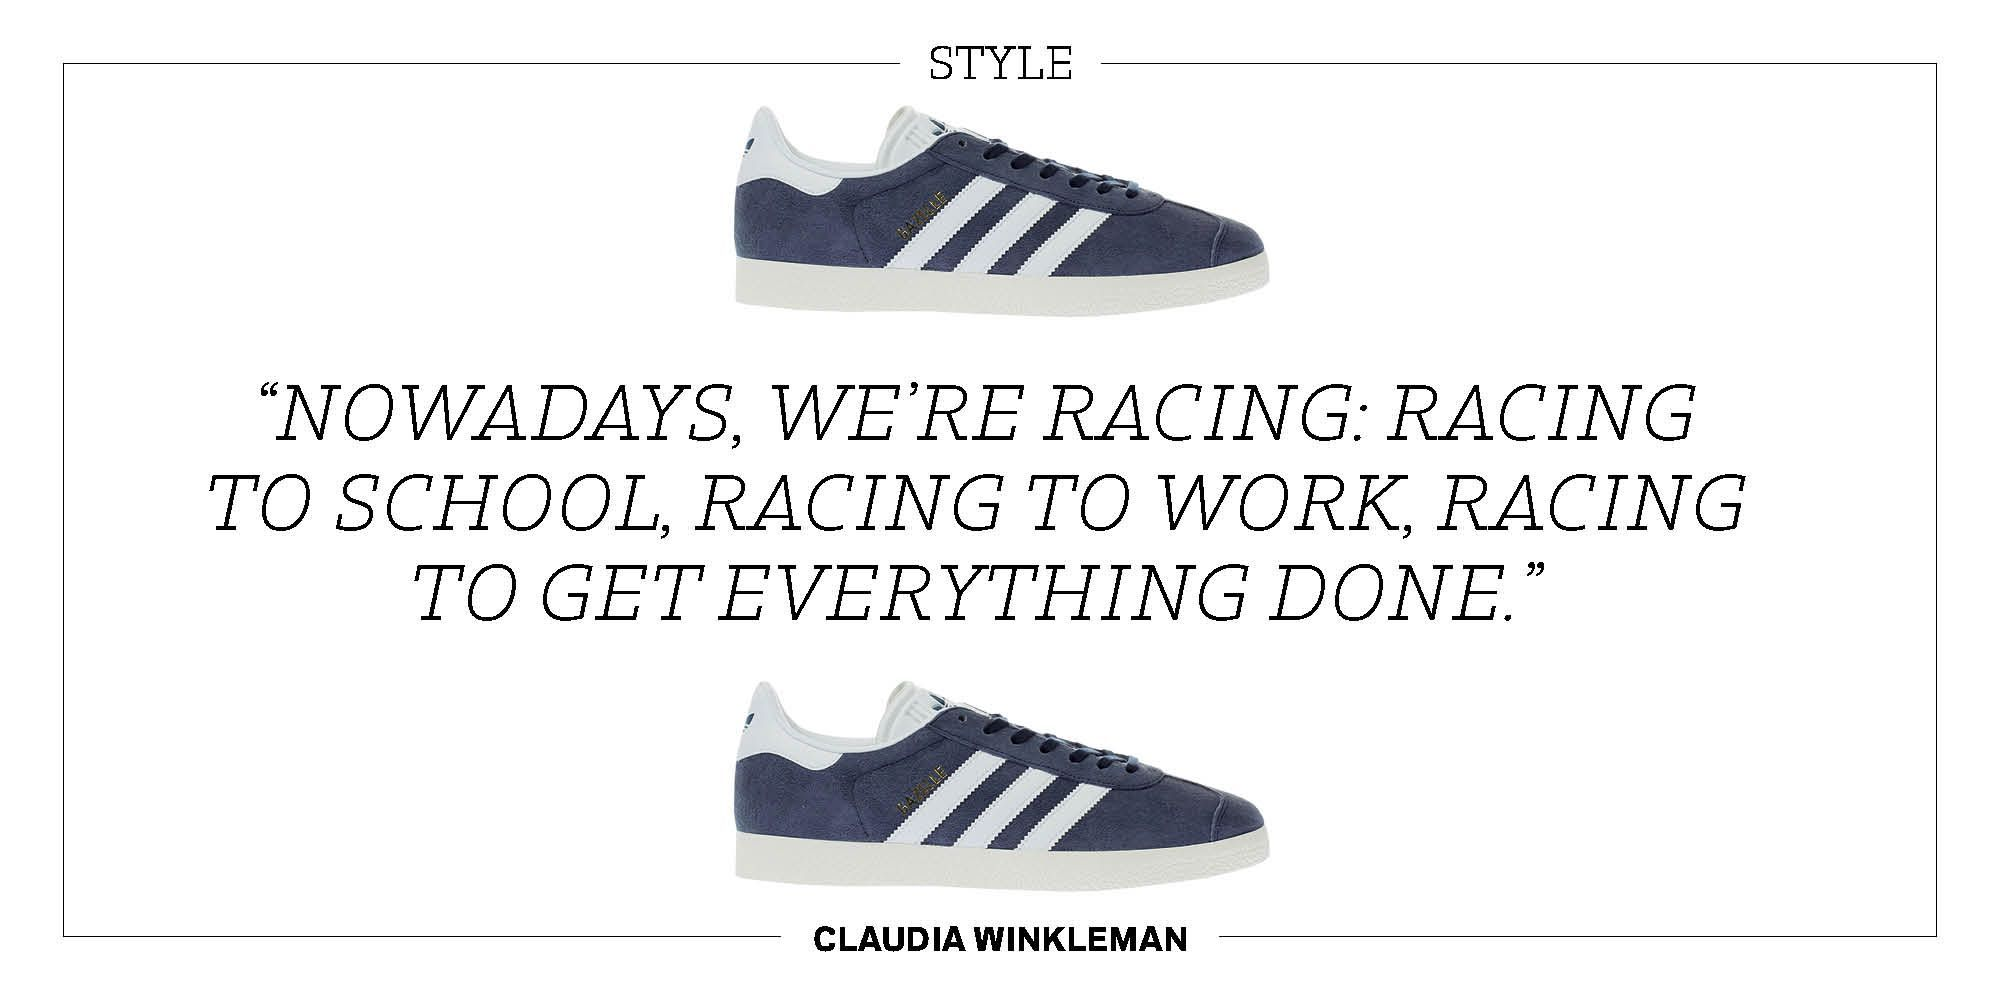 RT @TheSTStyle: .@ClaudiaWinkle on the perfect run-around shoe: https://t.co/p3LKLBJhc5 https://t.co/PQ6Qj4dpXD